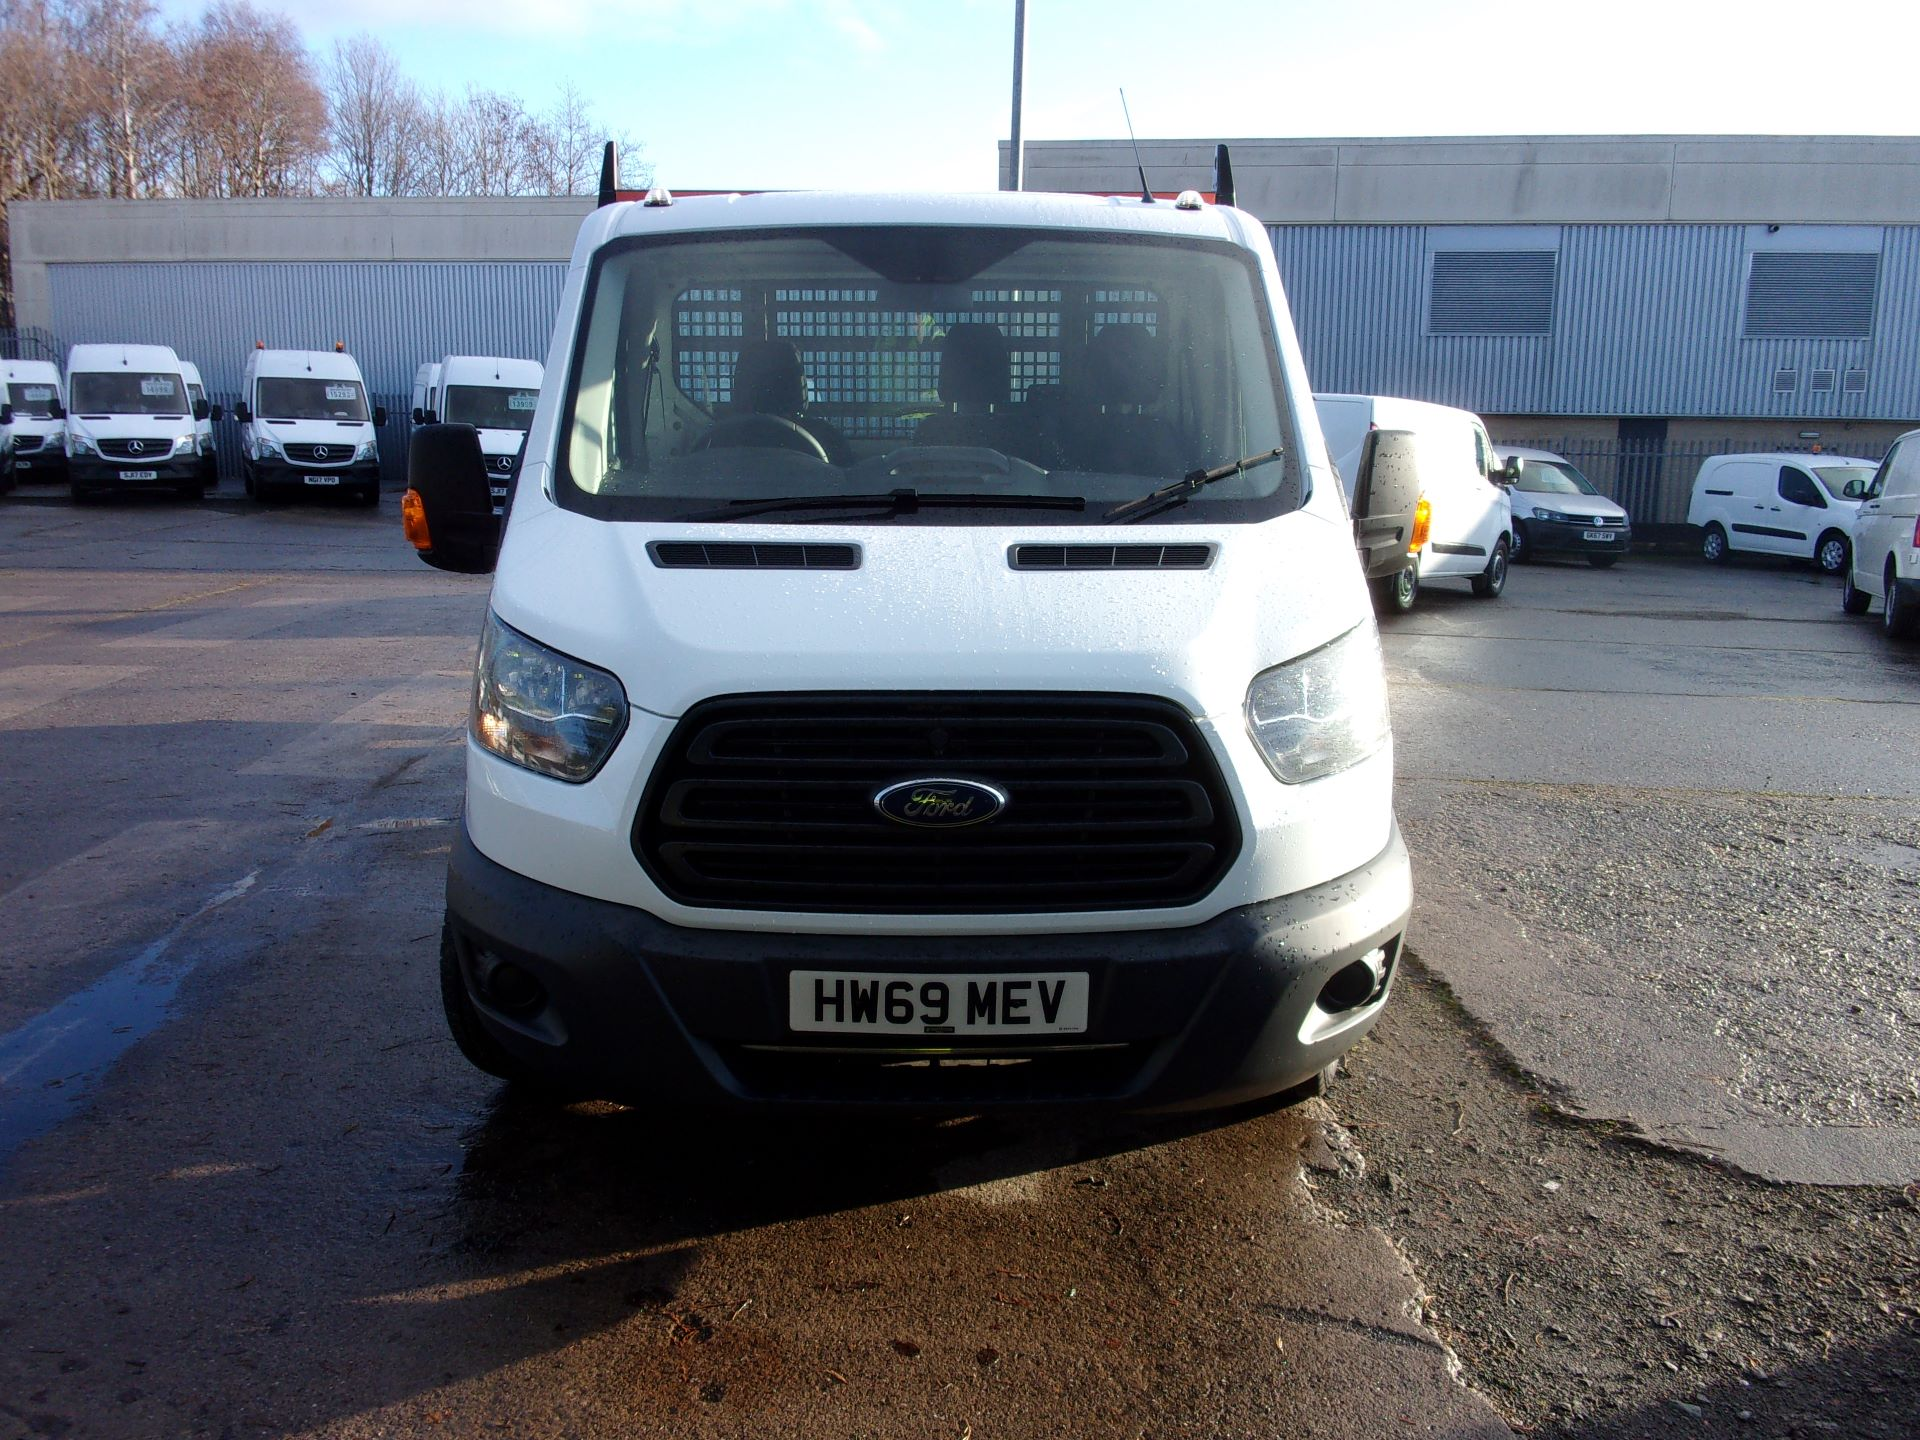 2019 Ford Transit 350 L4 DIESEL FWD 2.0 TDCI 130PS DROPSIDE EURO 6 (HW69MEV) Thumbnail 15